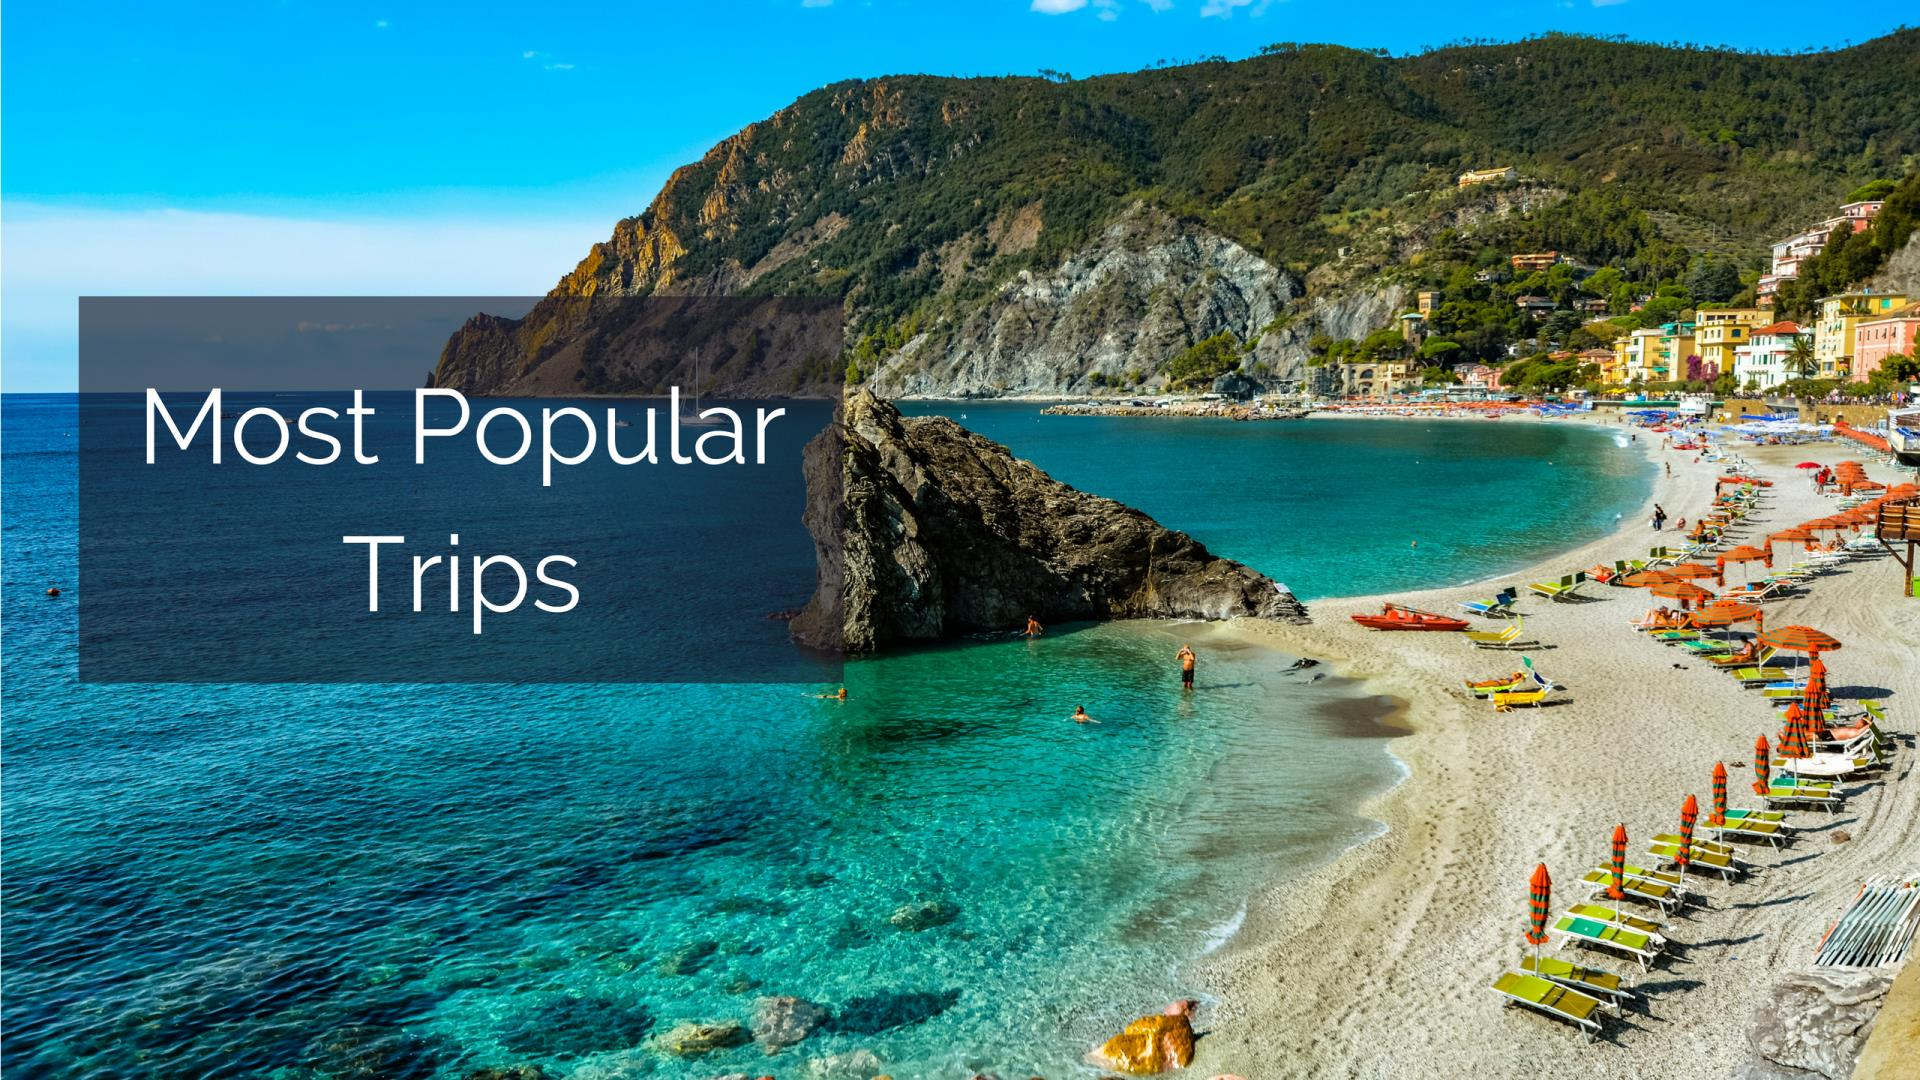 Most Popular Trips